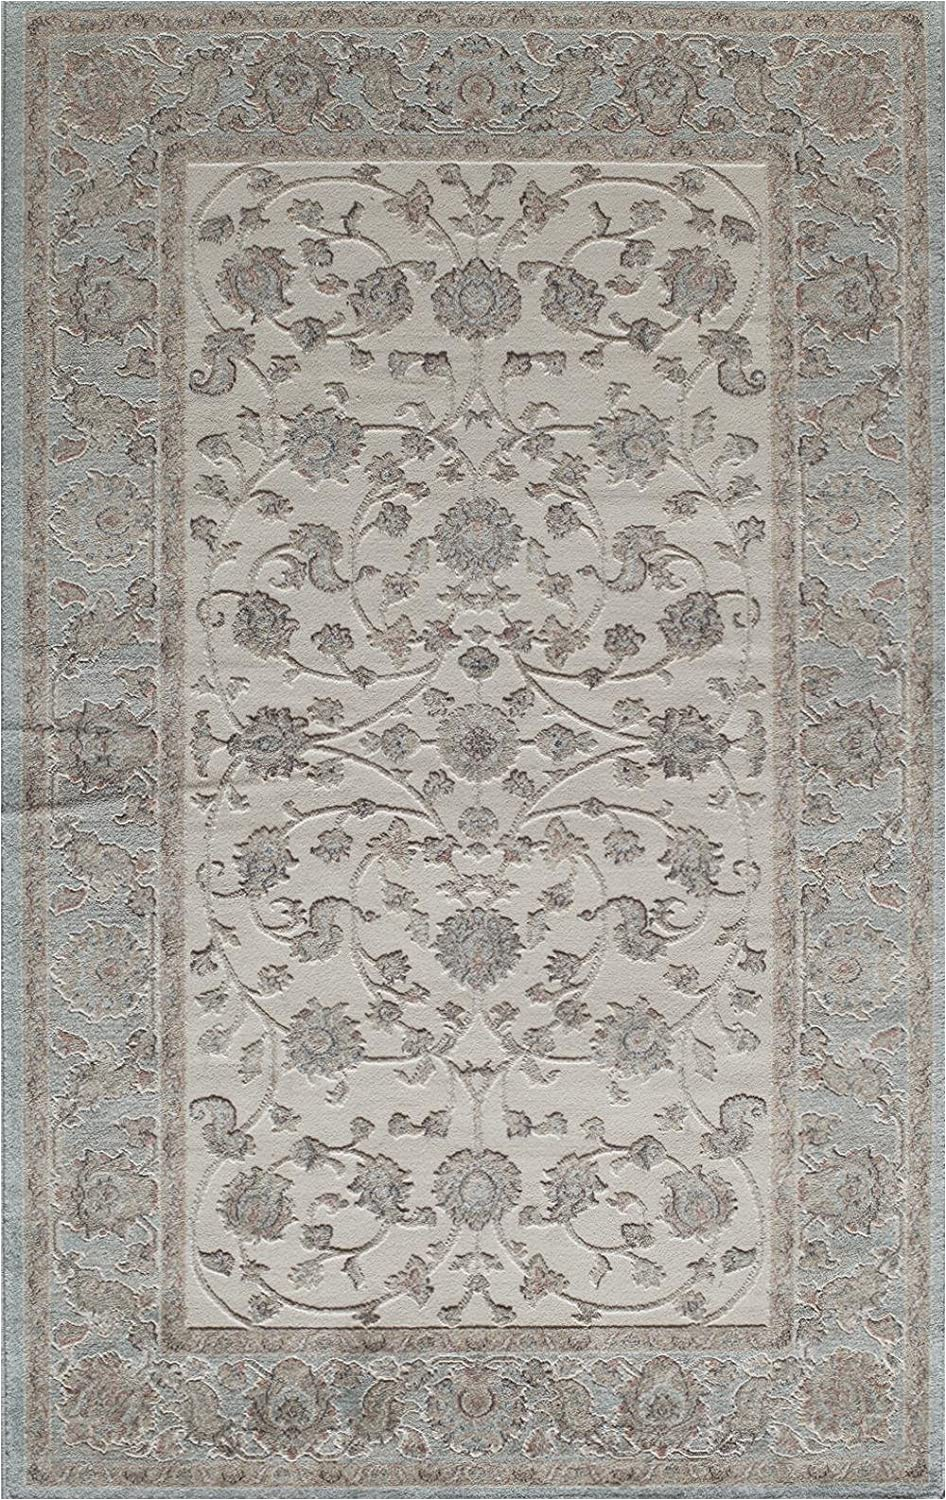 8ft by 8ft area Rug Rugs America area Rug 8 Ft 0 In X 10 Ft 0 In Ivory Blue